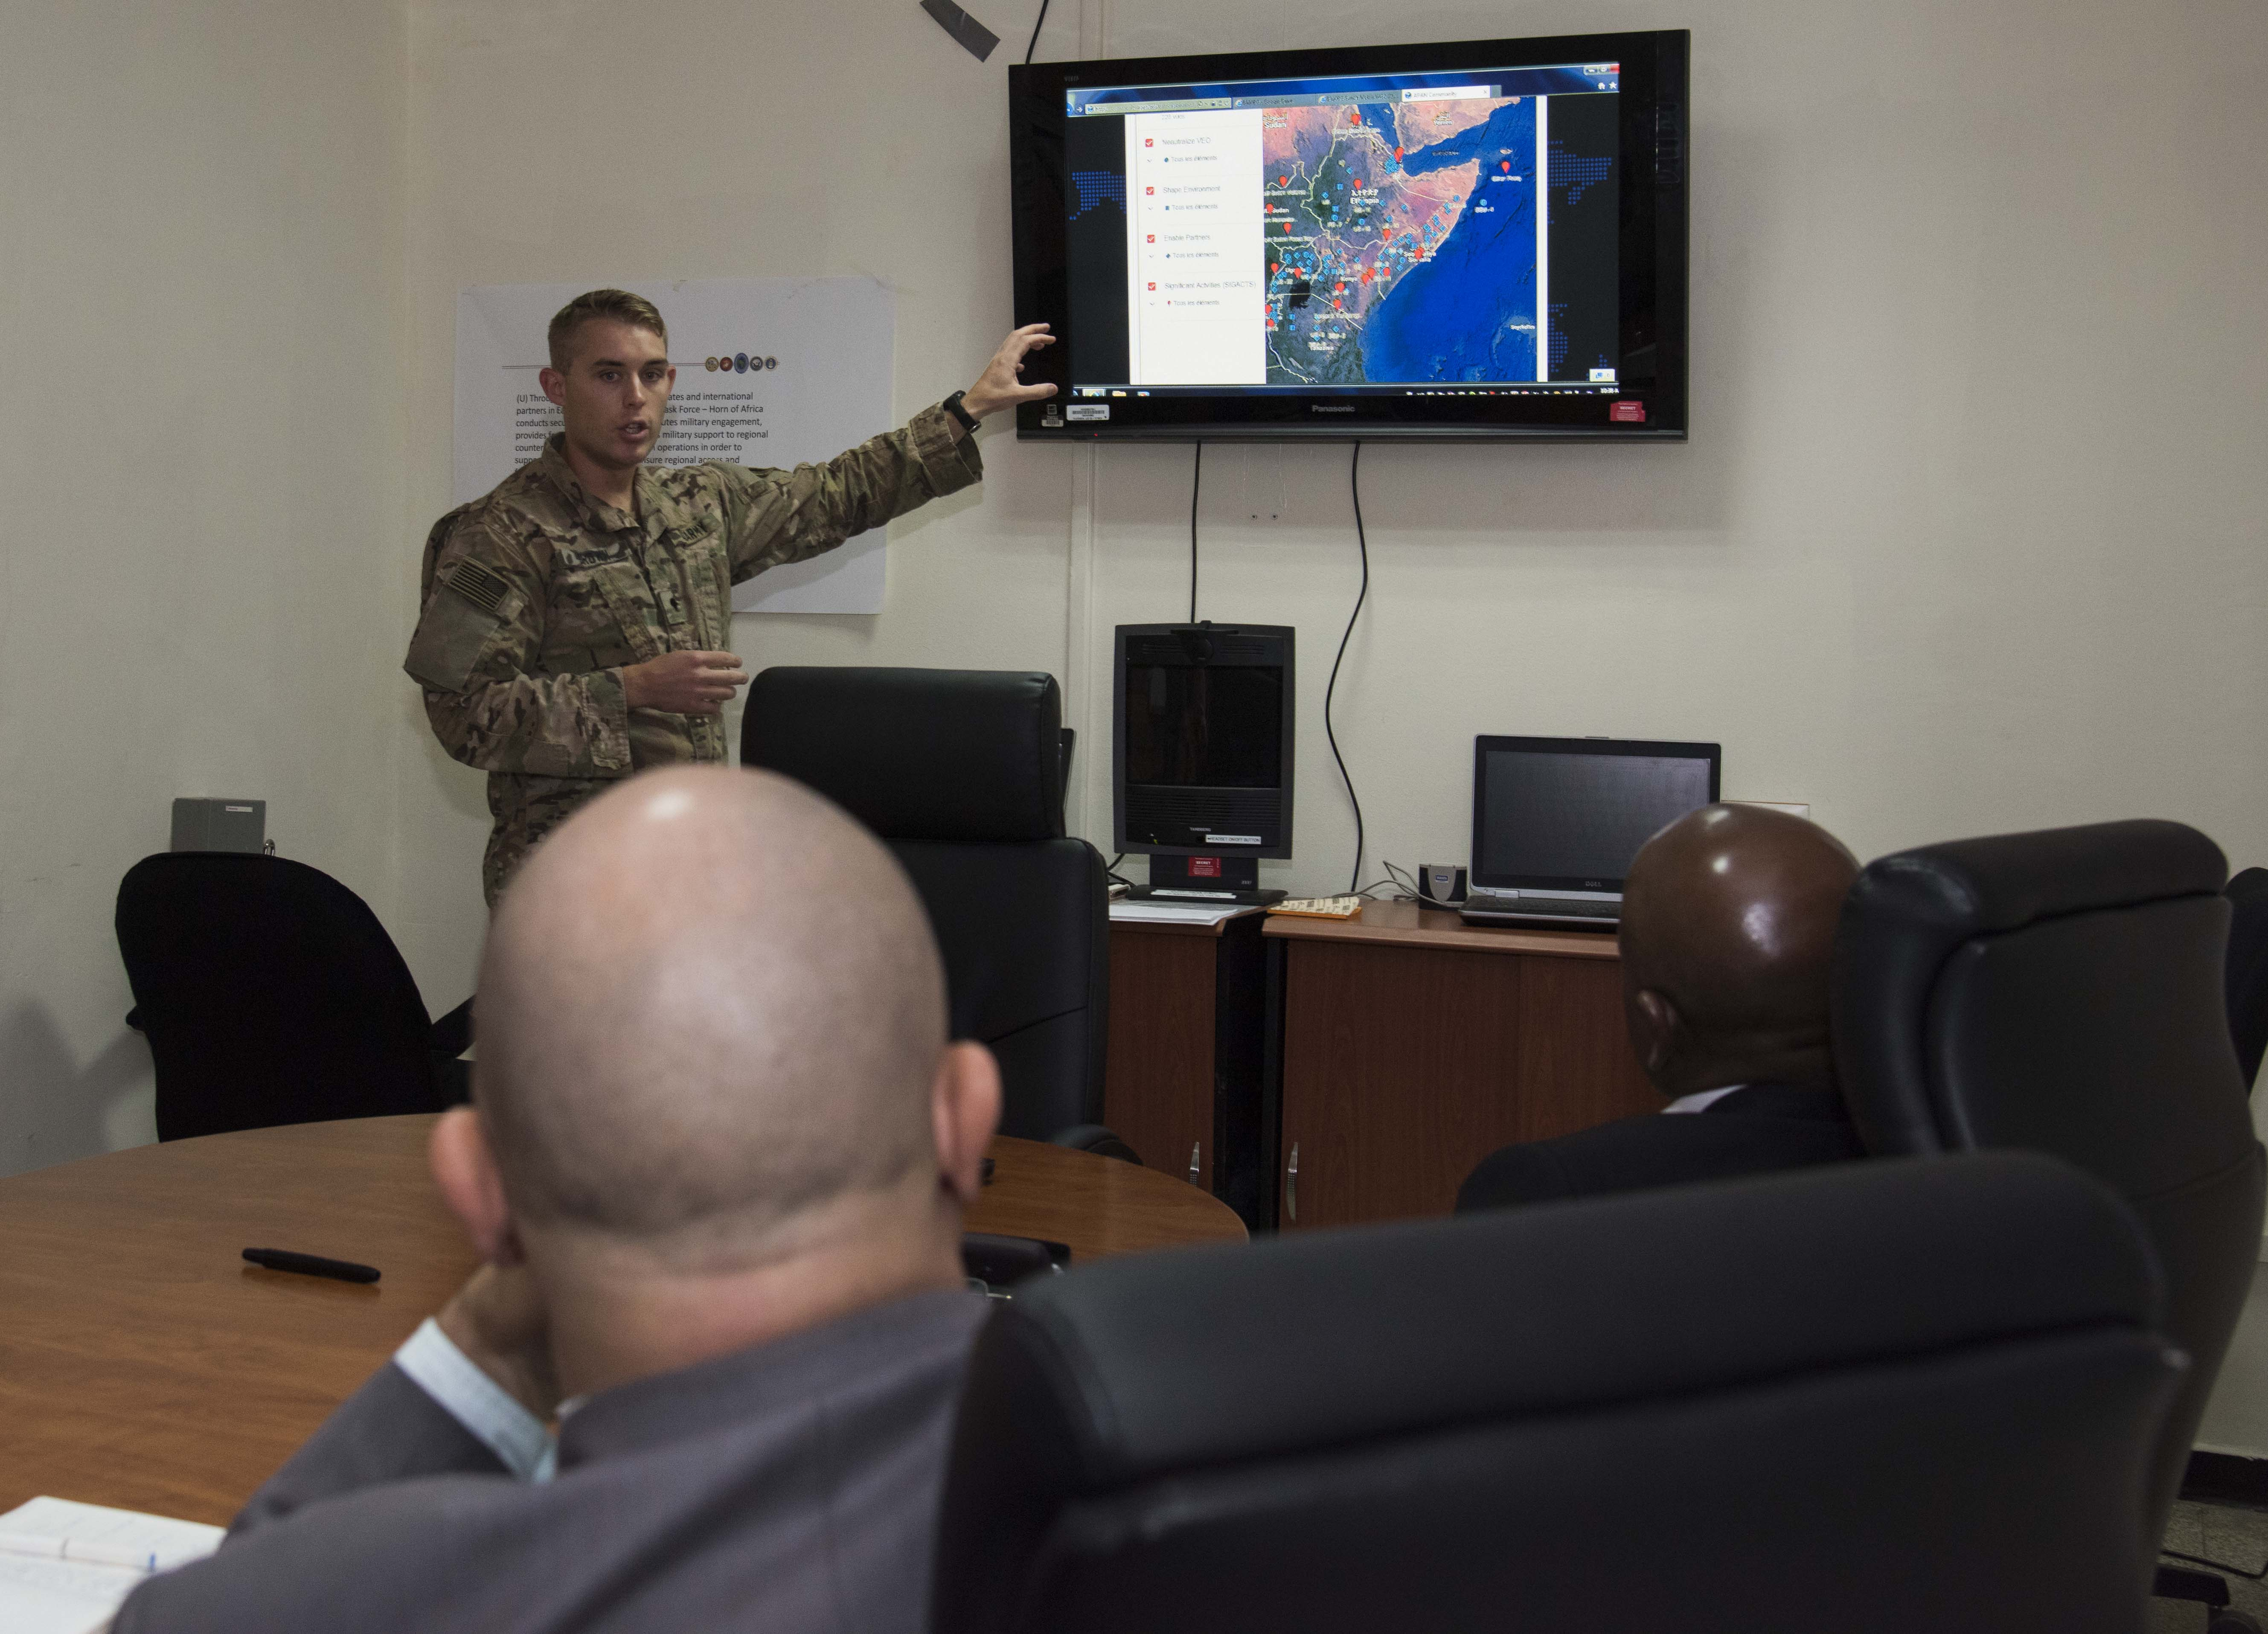 Spc. Scott Brown explains the All Partners Access Network (APAN) to Ambassador Issimail Chanfi, Eastern Africa Standby Force (EASF) director, and Benediste Hoareau, EASF head of political affairs, during their tour of Combined Task Force-Horn of Africa Oct. 27, 2015 at Camp Lemonnier, Djibouti. APAN is an information sharing service for the U.S. Department of Defense (DOD), allowing partners to share information around the globe. (U.S. Air Force photo by Staff Sgt. Victoria Sneed)